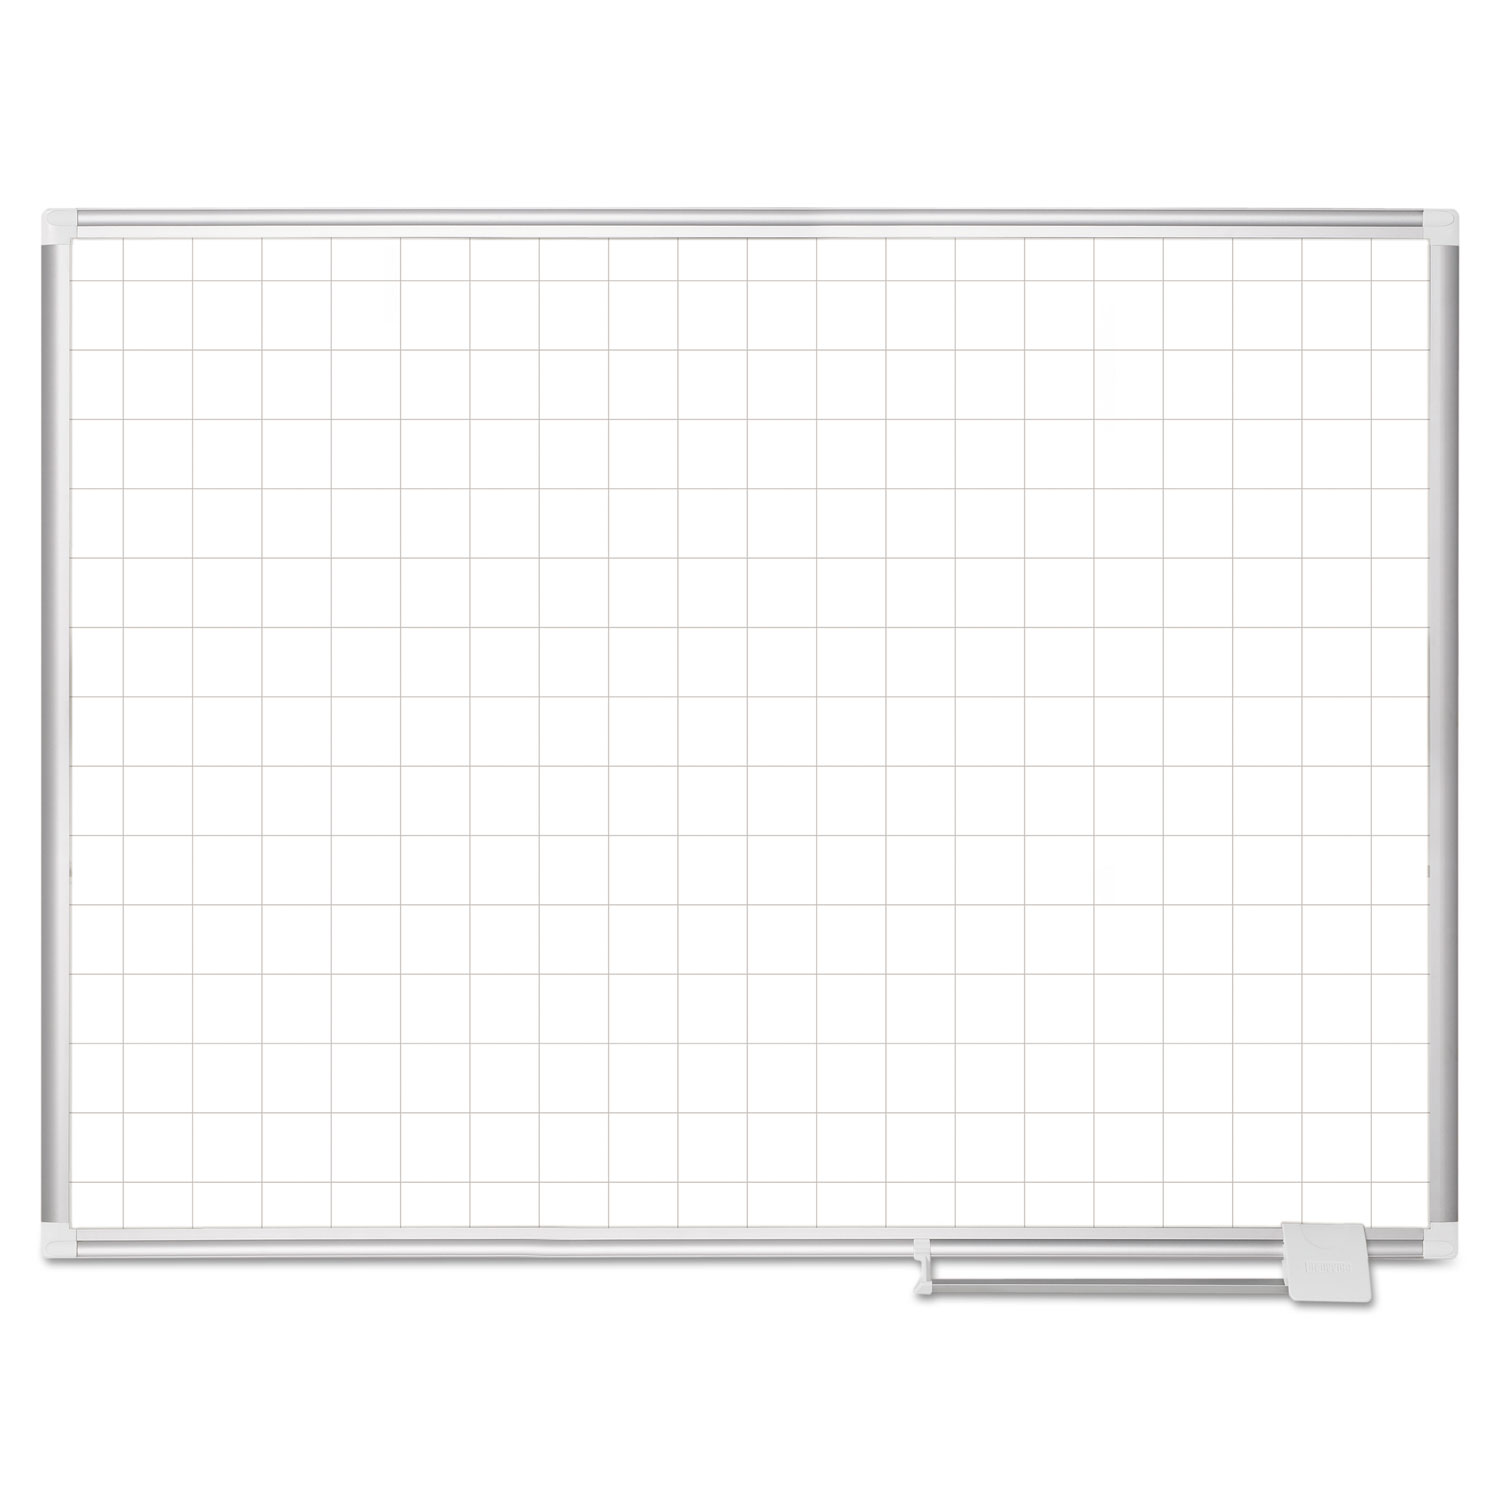 Platinum Plus Magnetic Porcelain Dry Erase Board, 2 x 2